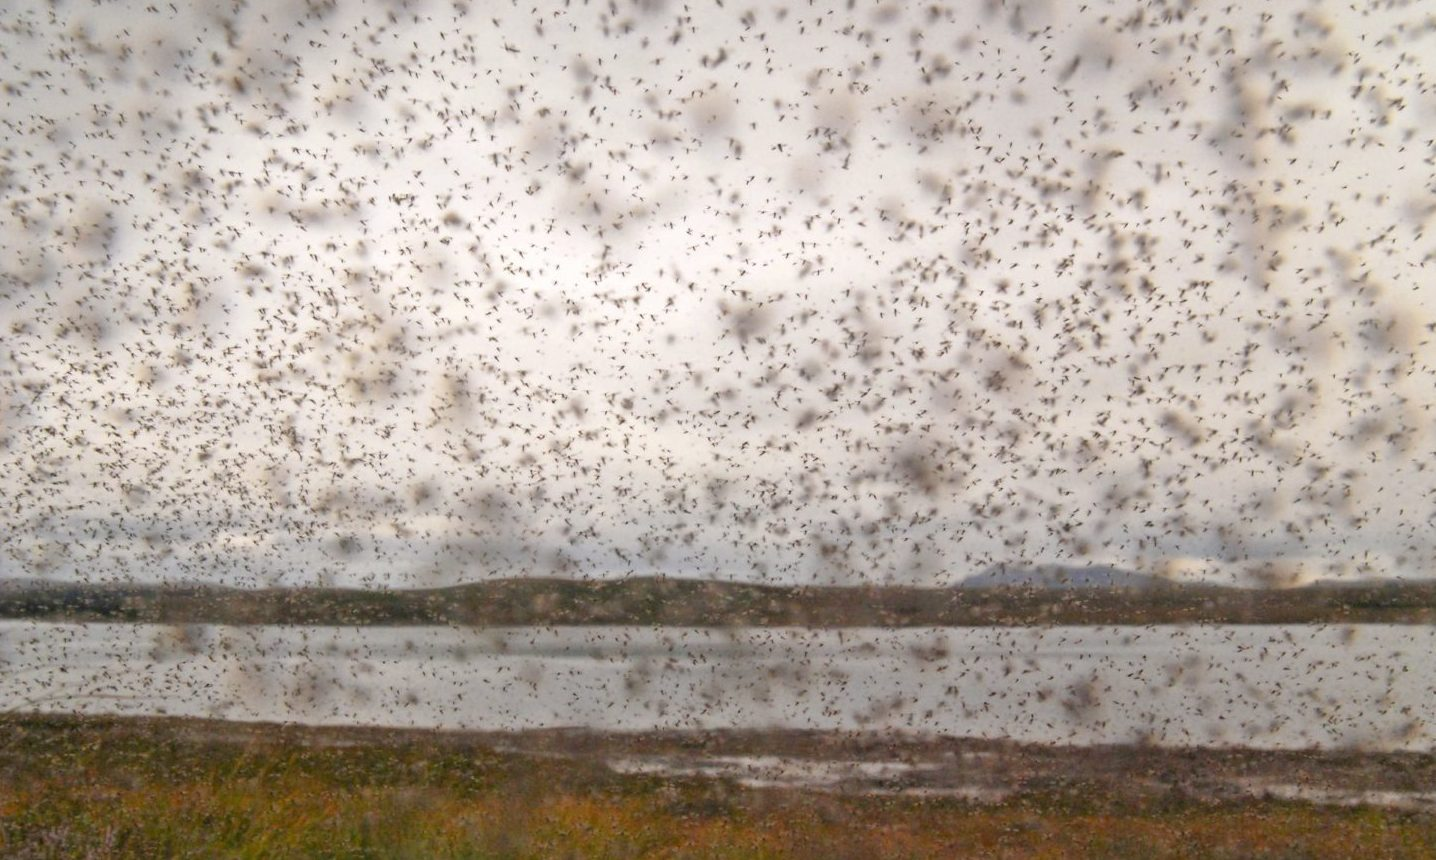 A swarm of midges (Culicoides impunctatus) in Scotland.